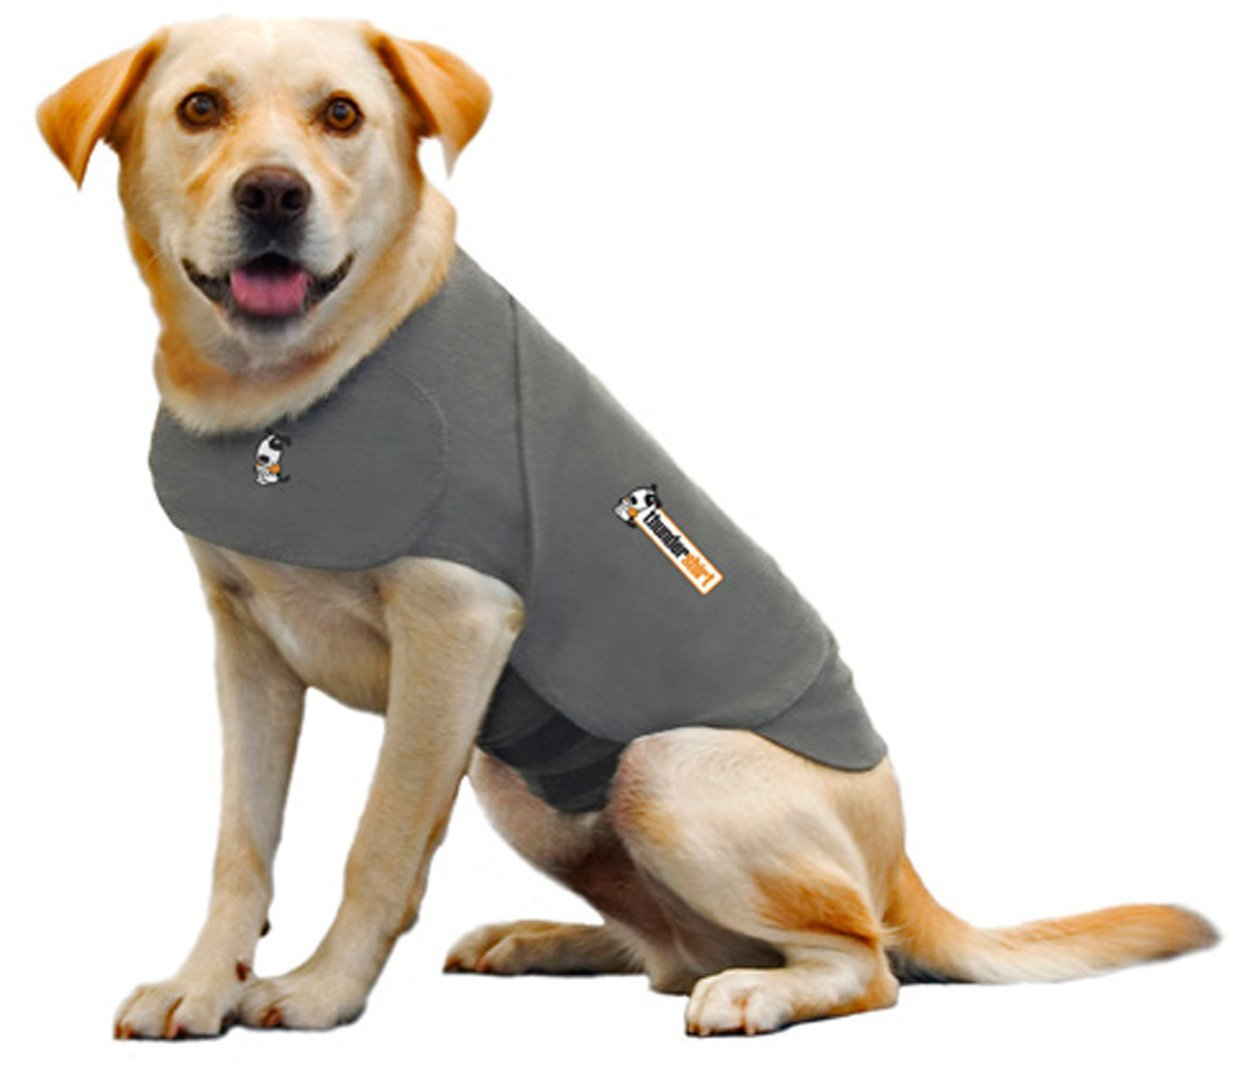 Thundershirt Anxiety Coat for Dog